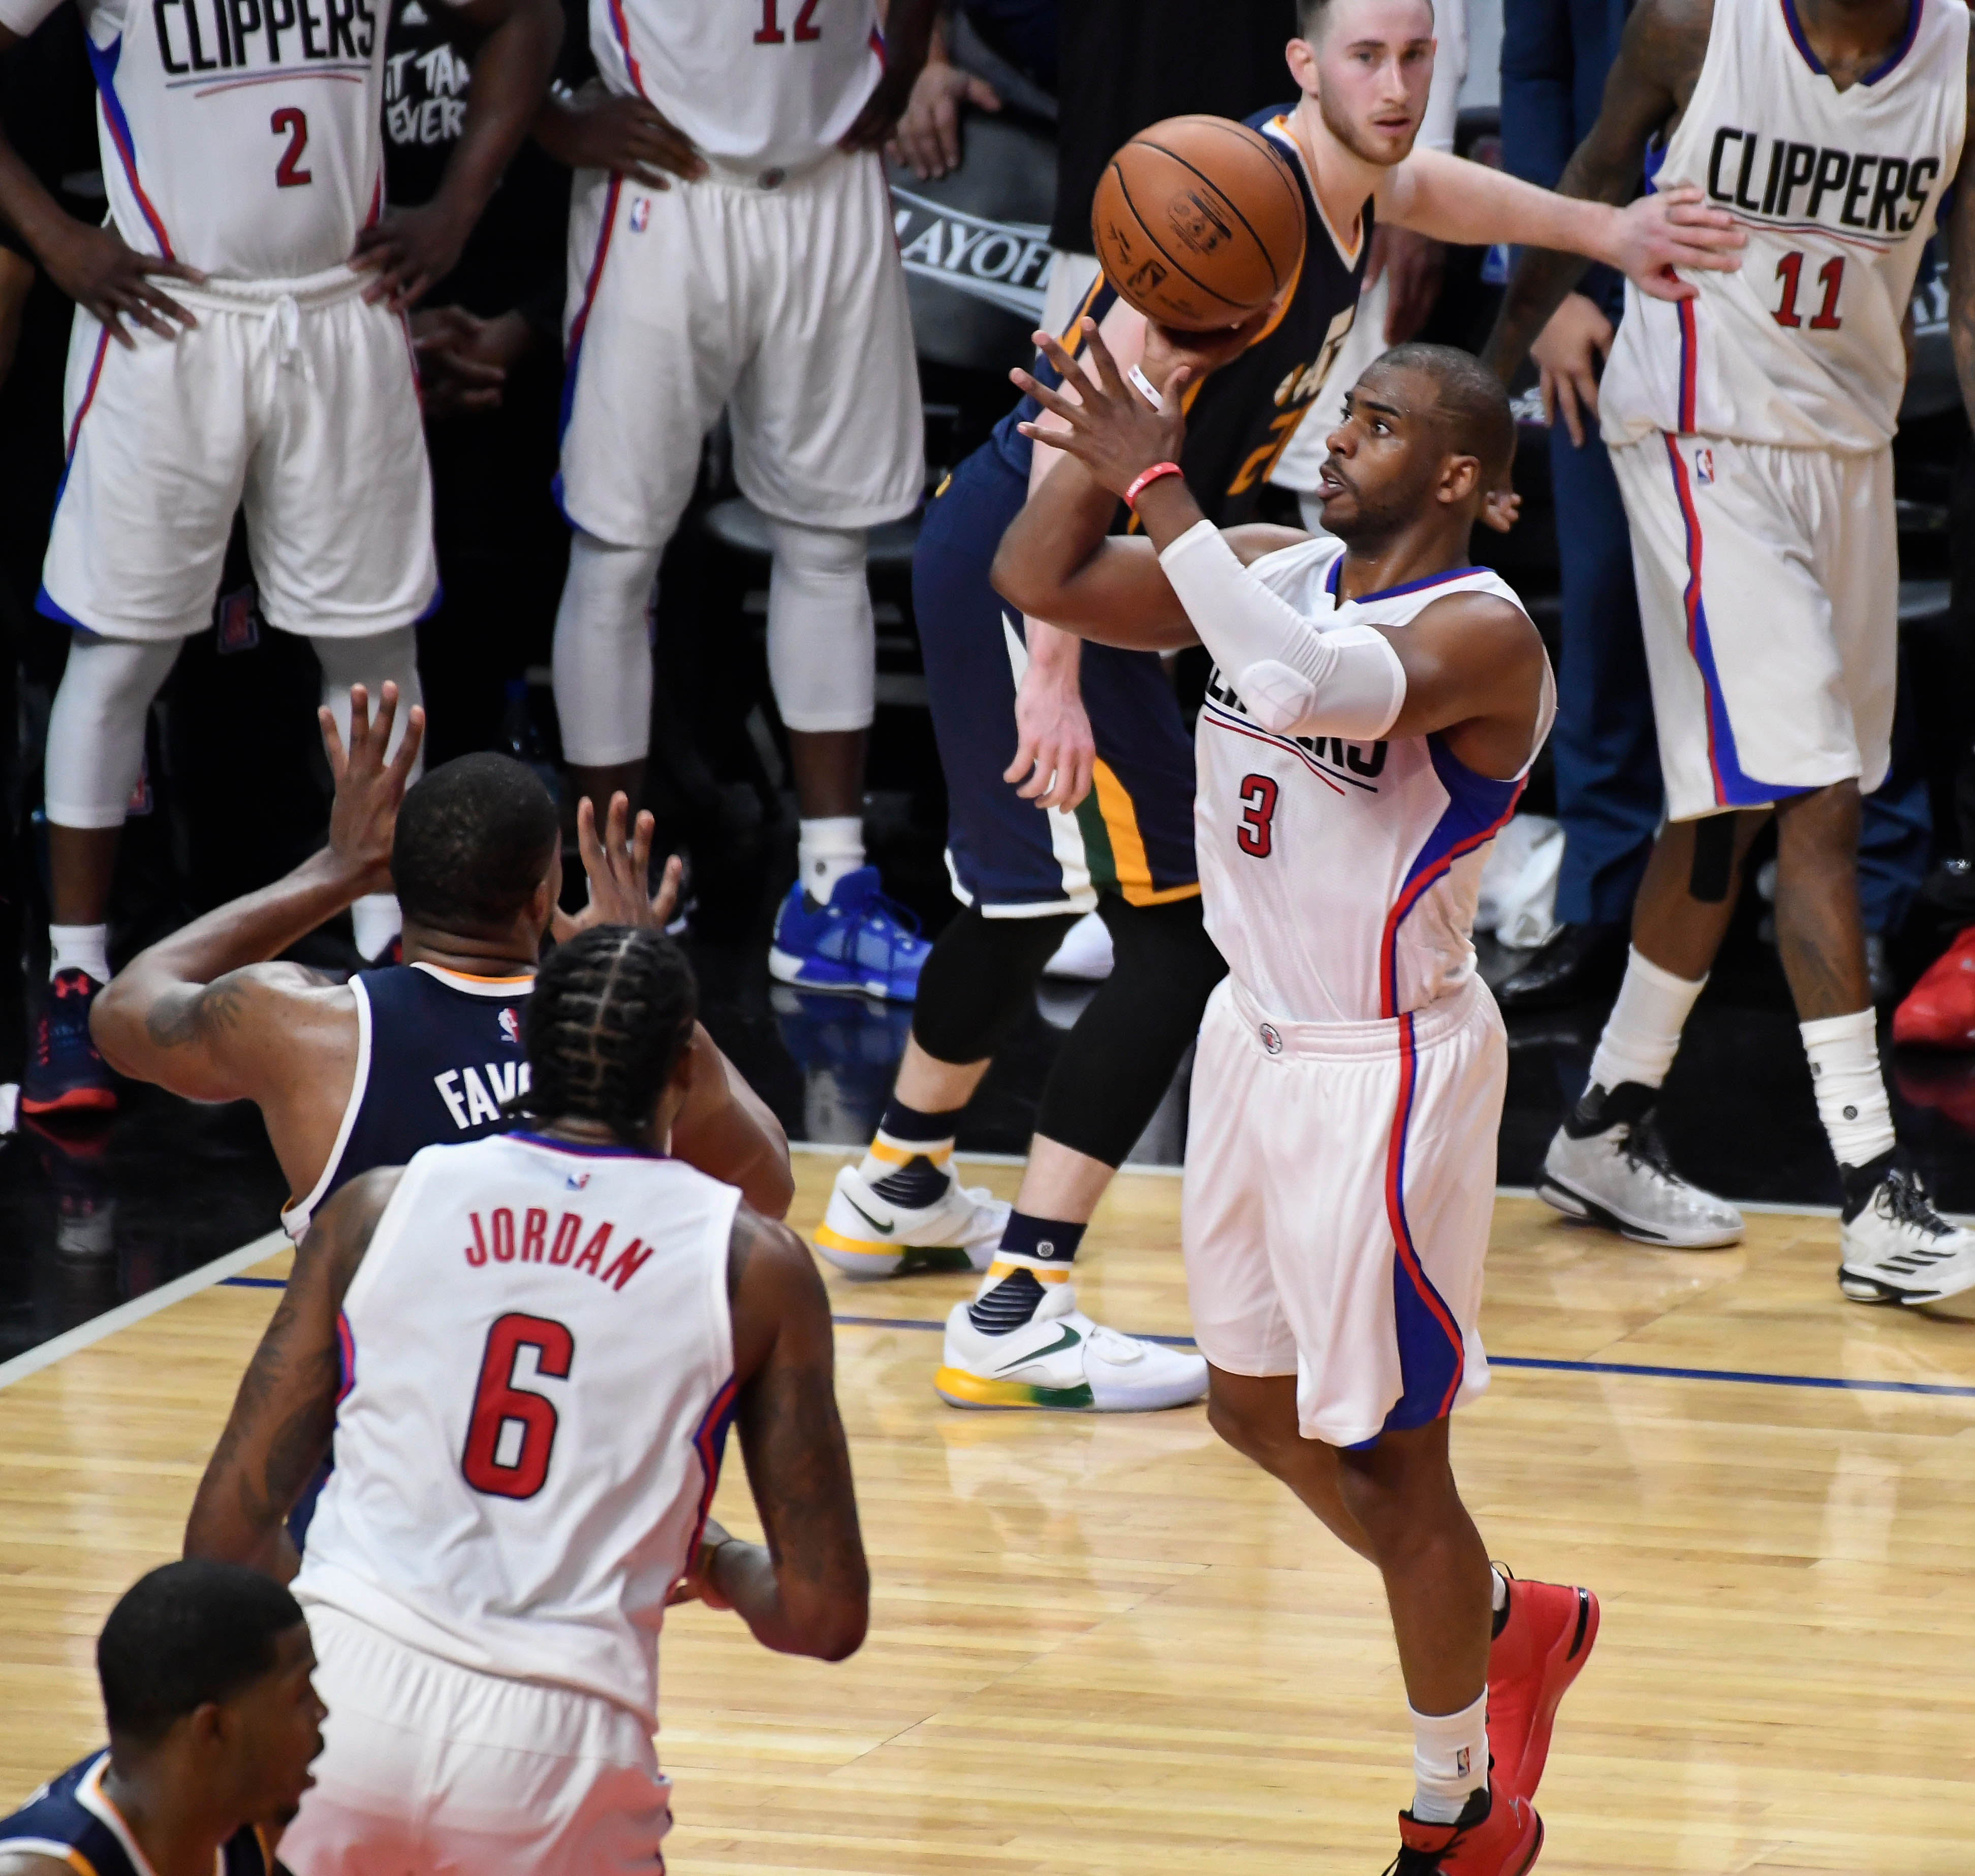 Los Angeles Clippers: 5 Takeaways From Game 1 Vs. Jazz